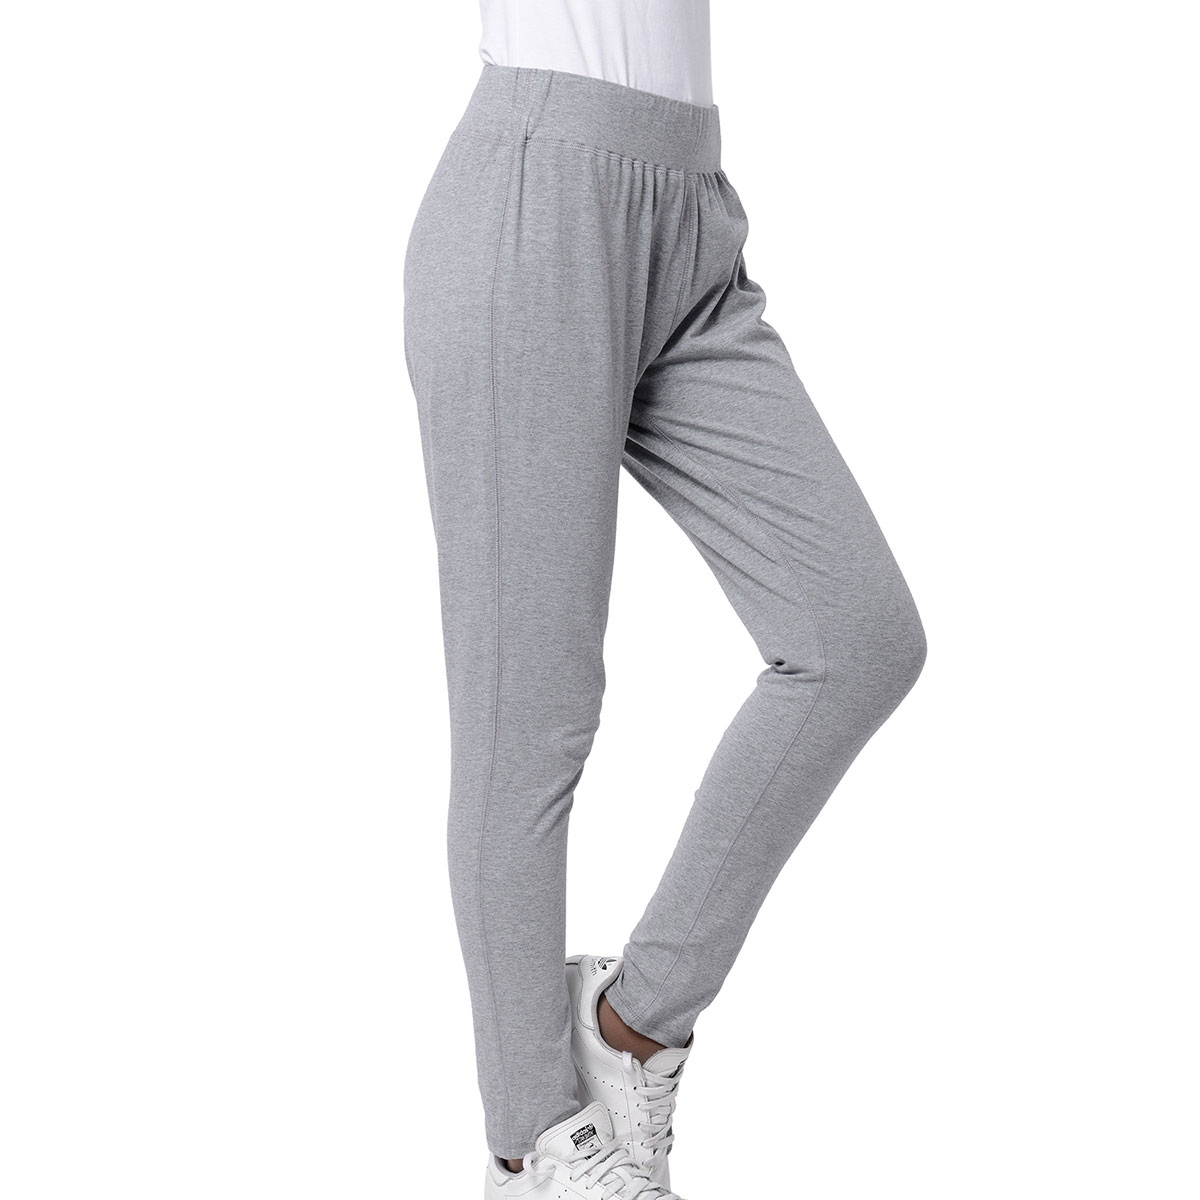 ea01bb0f4ee Marigold & Lotus Gray High Waist Elastic Legging Pants - XL (100% Viscose)